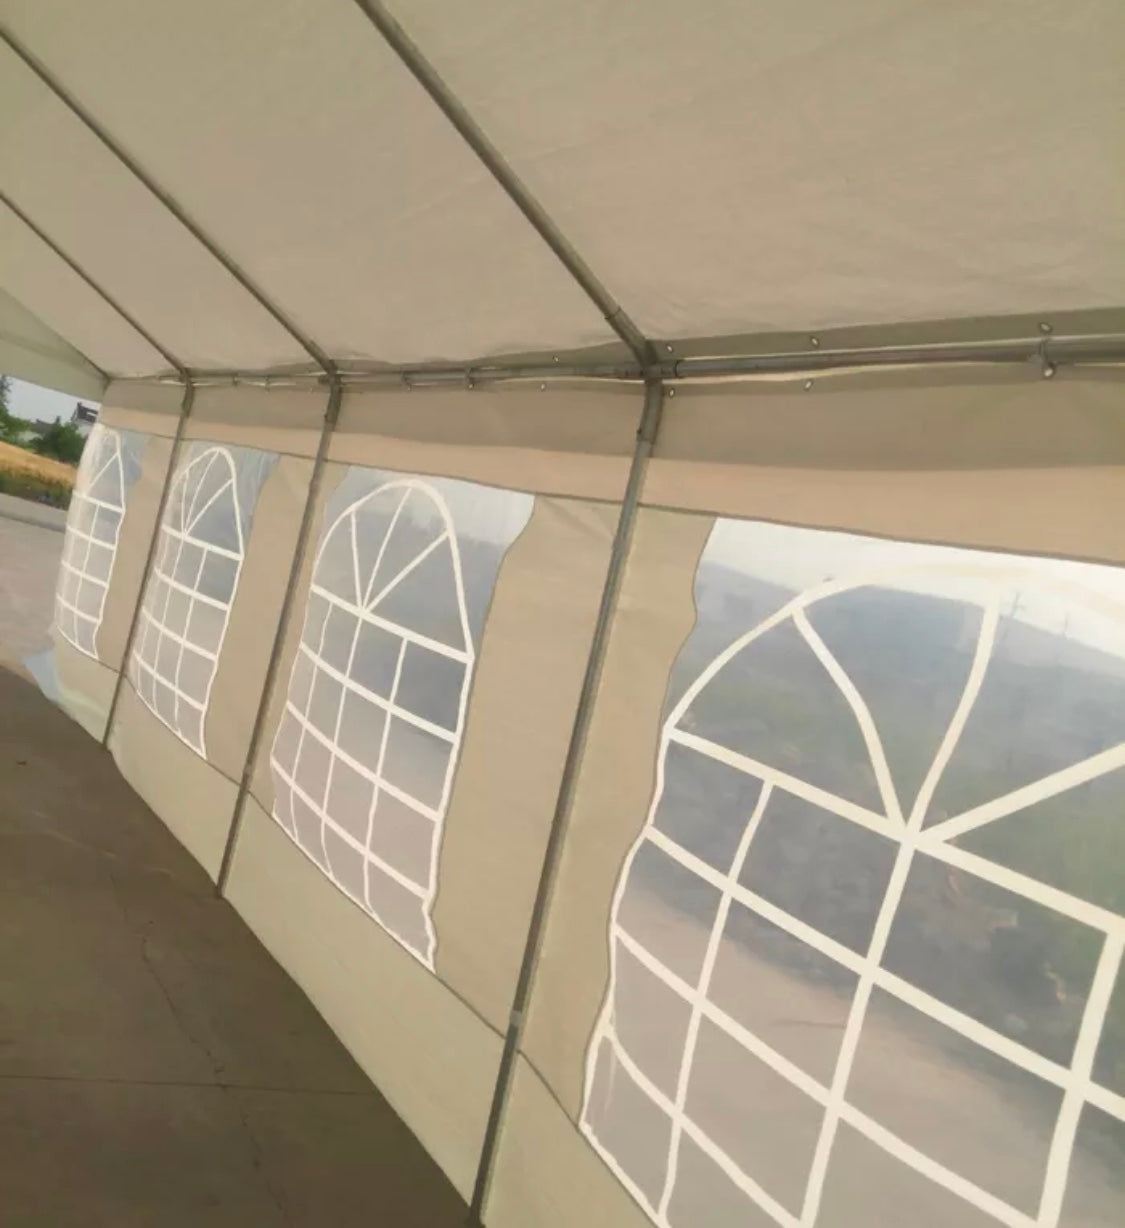 20' x 30' Party/Event/Wedding Tent, Carport or Canopy